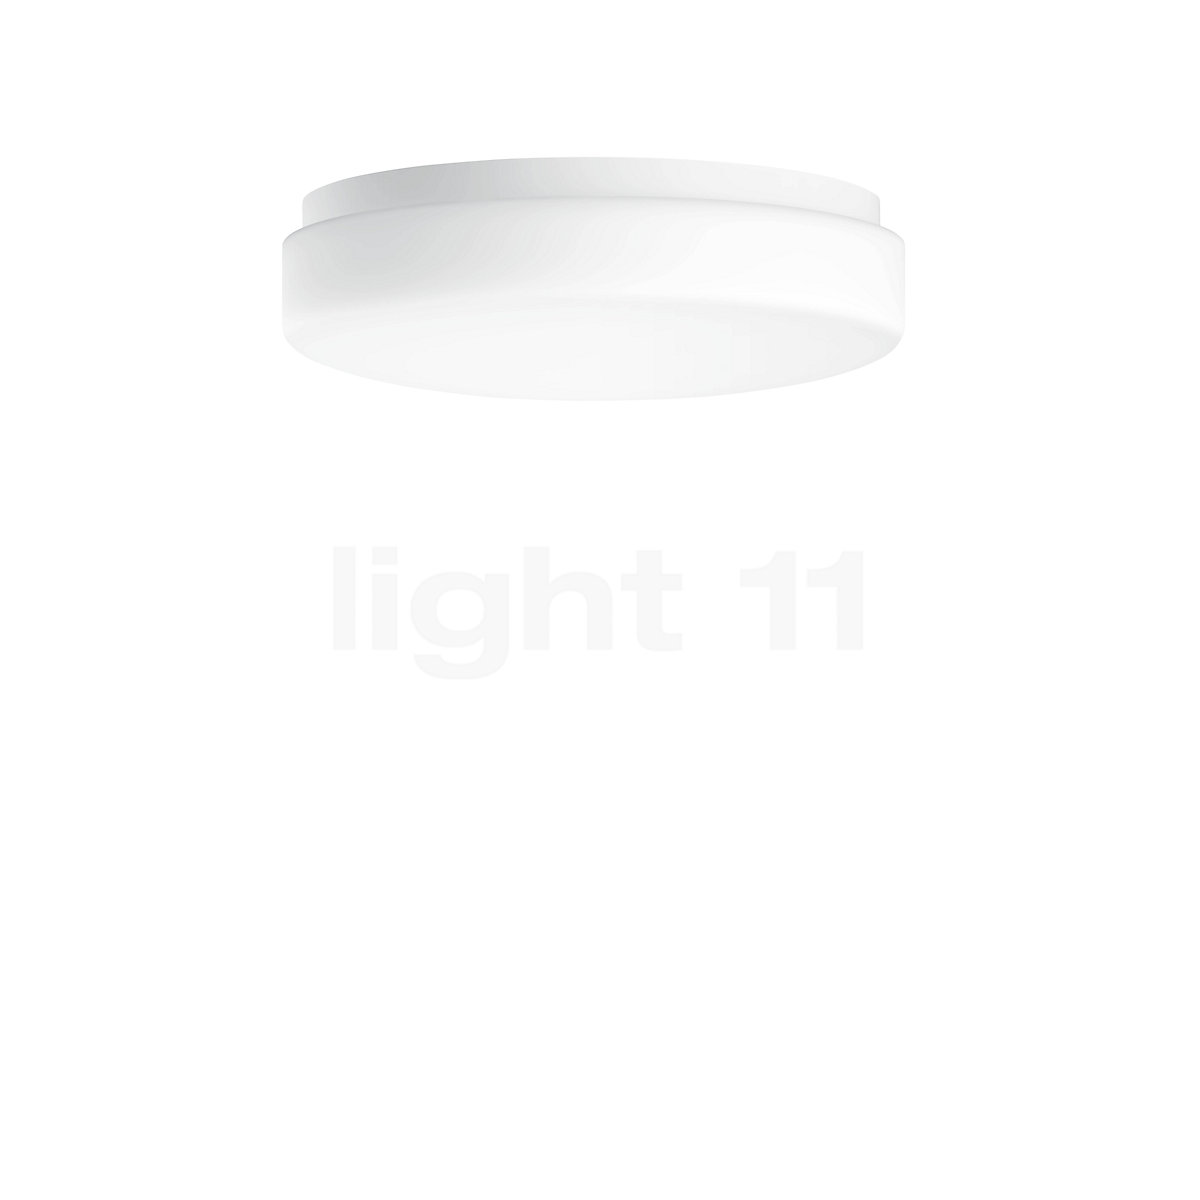 Buy Bega Prima 50042 Wall Ceiling Light Led With Motion Sensor At